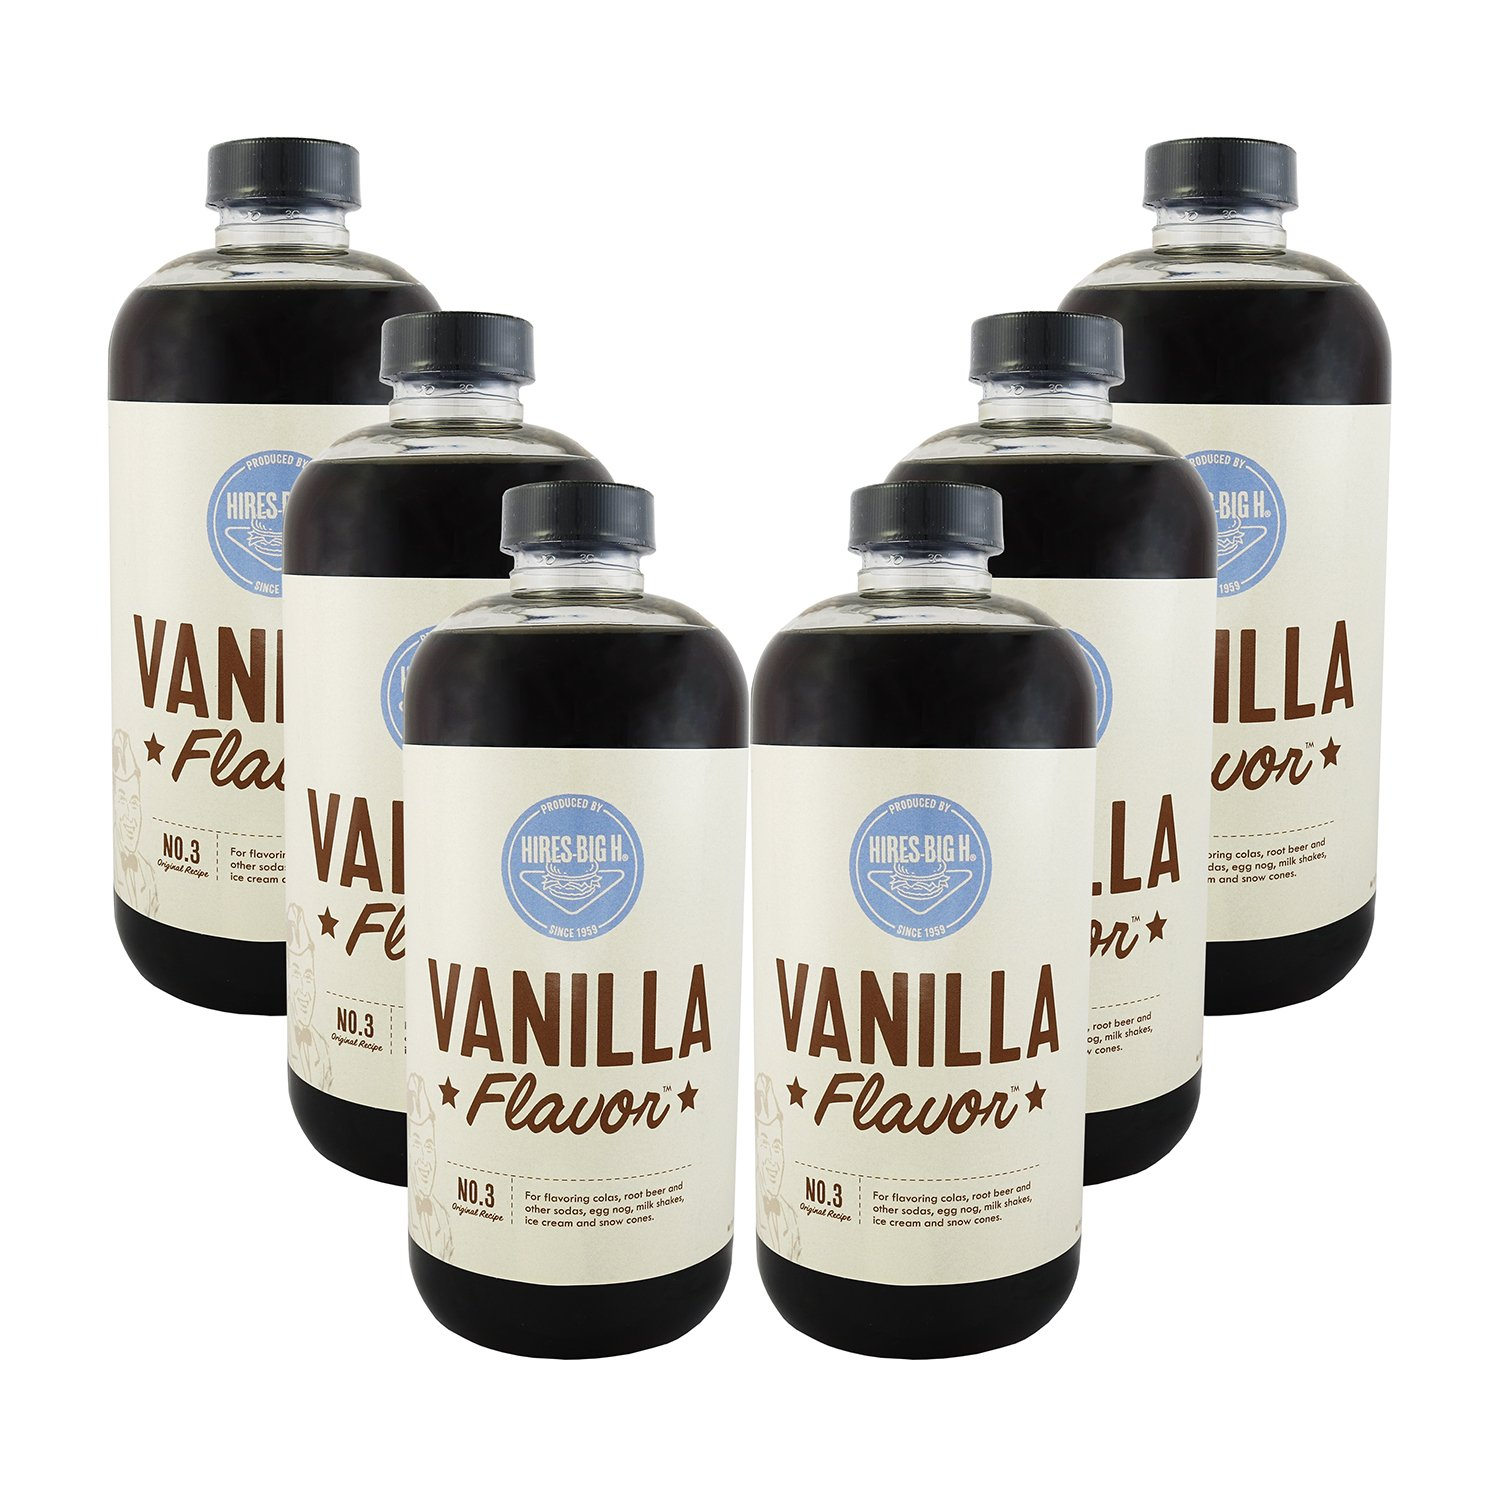 Hires Big H Vanilla Syrup, Great for Soda Flavoring 18 oz - 6 Pack